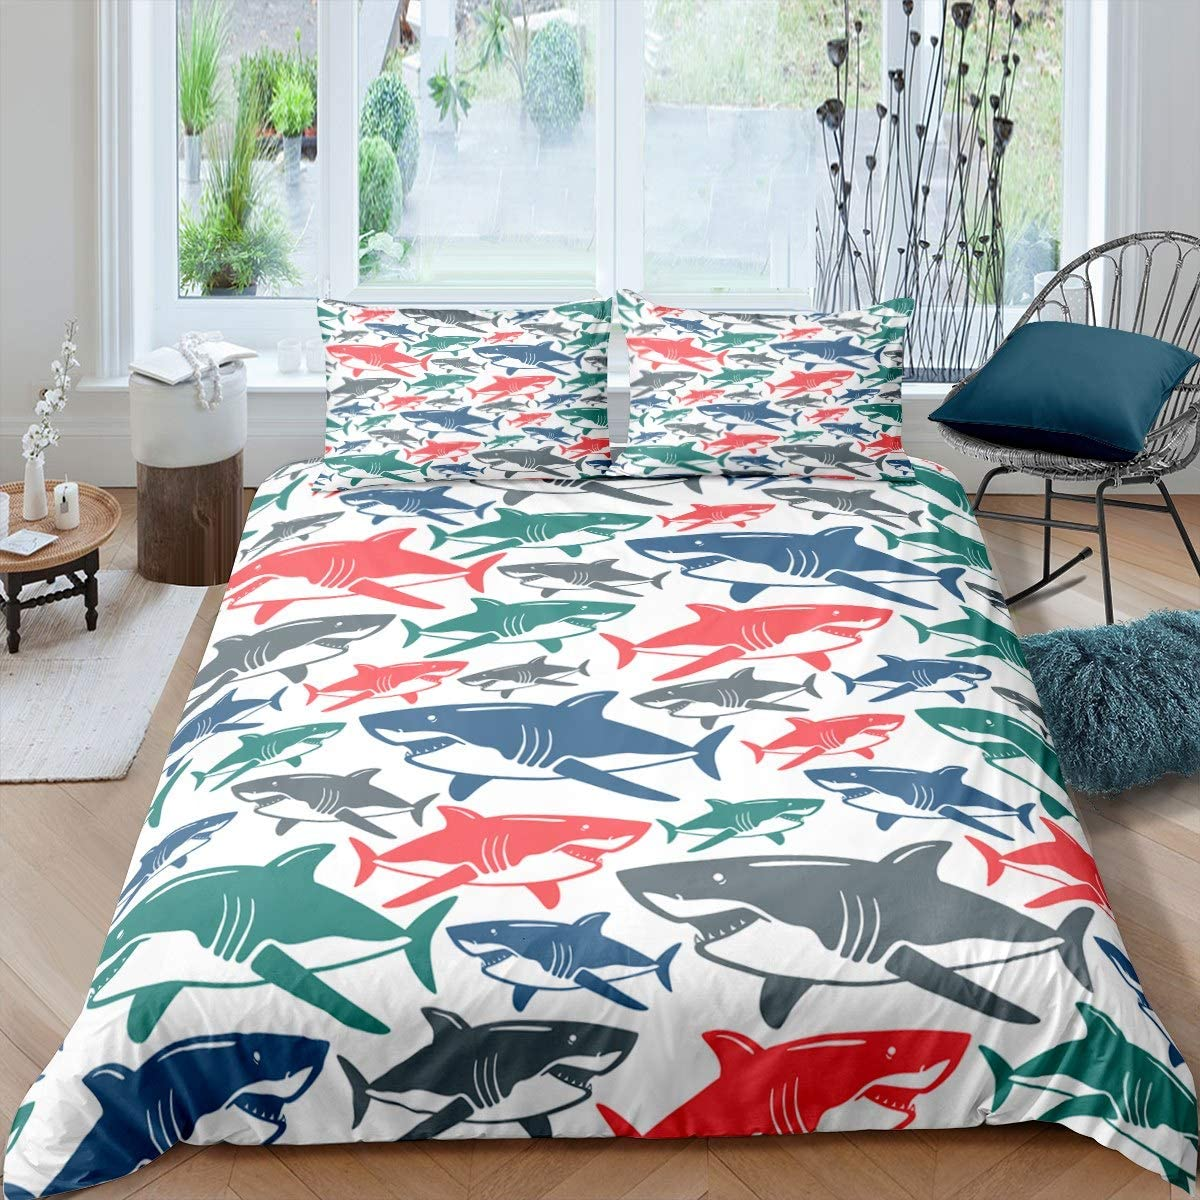 Shark Duvet Cover Set Kids Boys Colorful Bull Shark Fish Family Comforter Cover For Teens Child Marine Life Animals Bedding Set Underwater World Decorative 2 Pcs Twin Size Quality Bed Linen Kitchen Dining